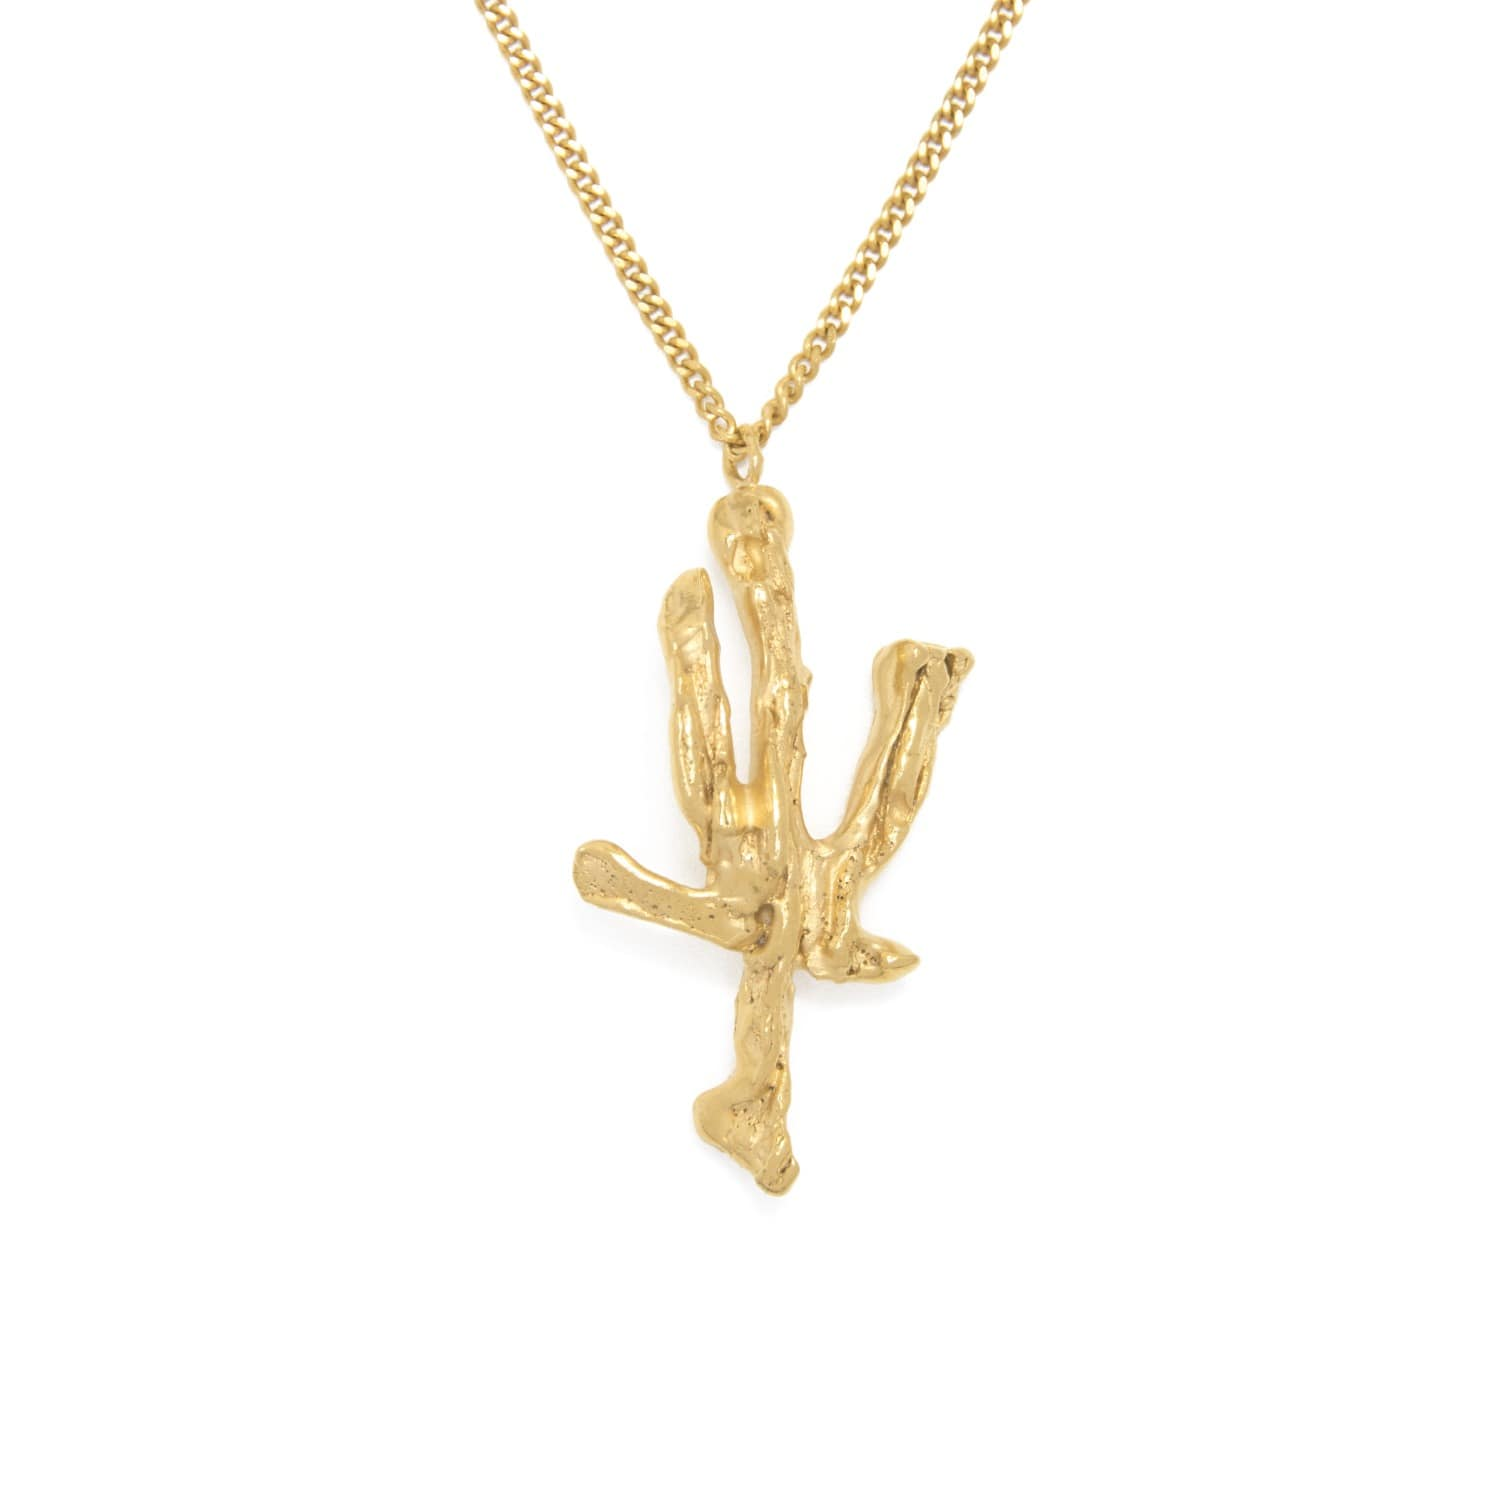 Chinese Zodiac Ox Horoscope Gold Pendant Necklace by Loveness Lee